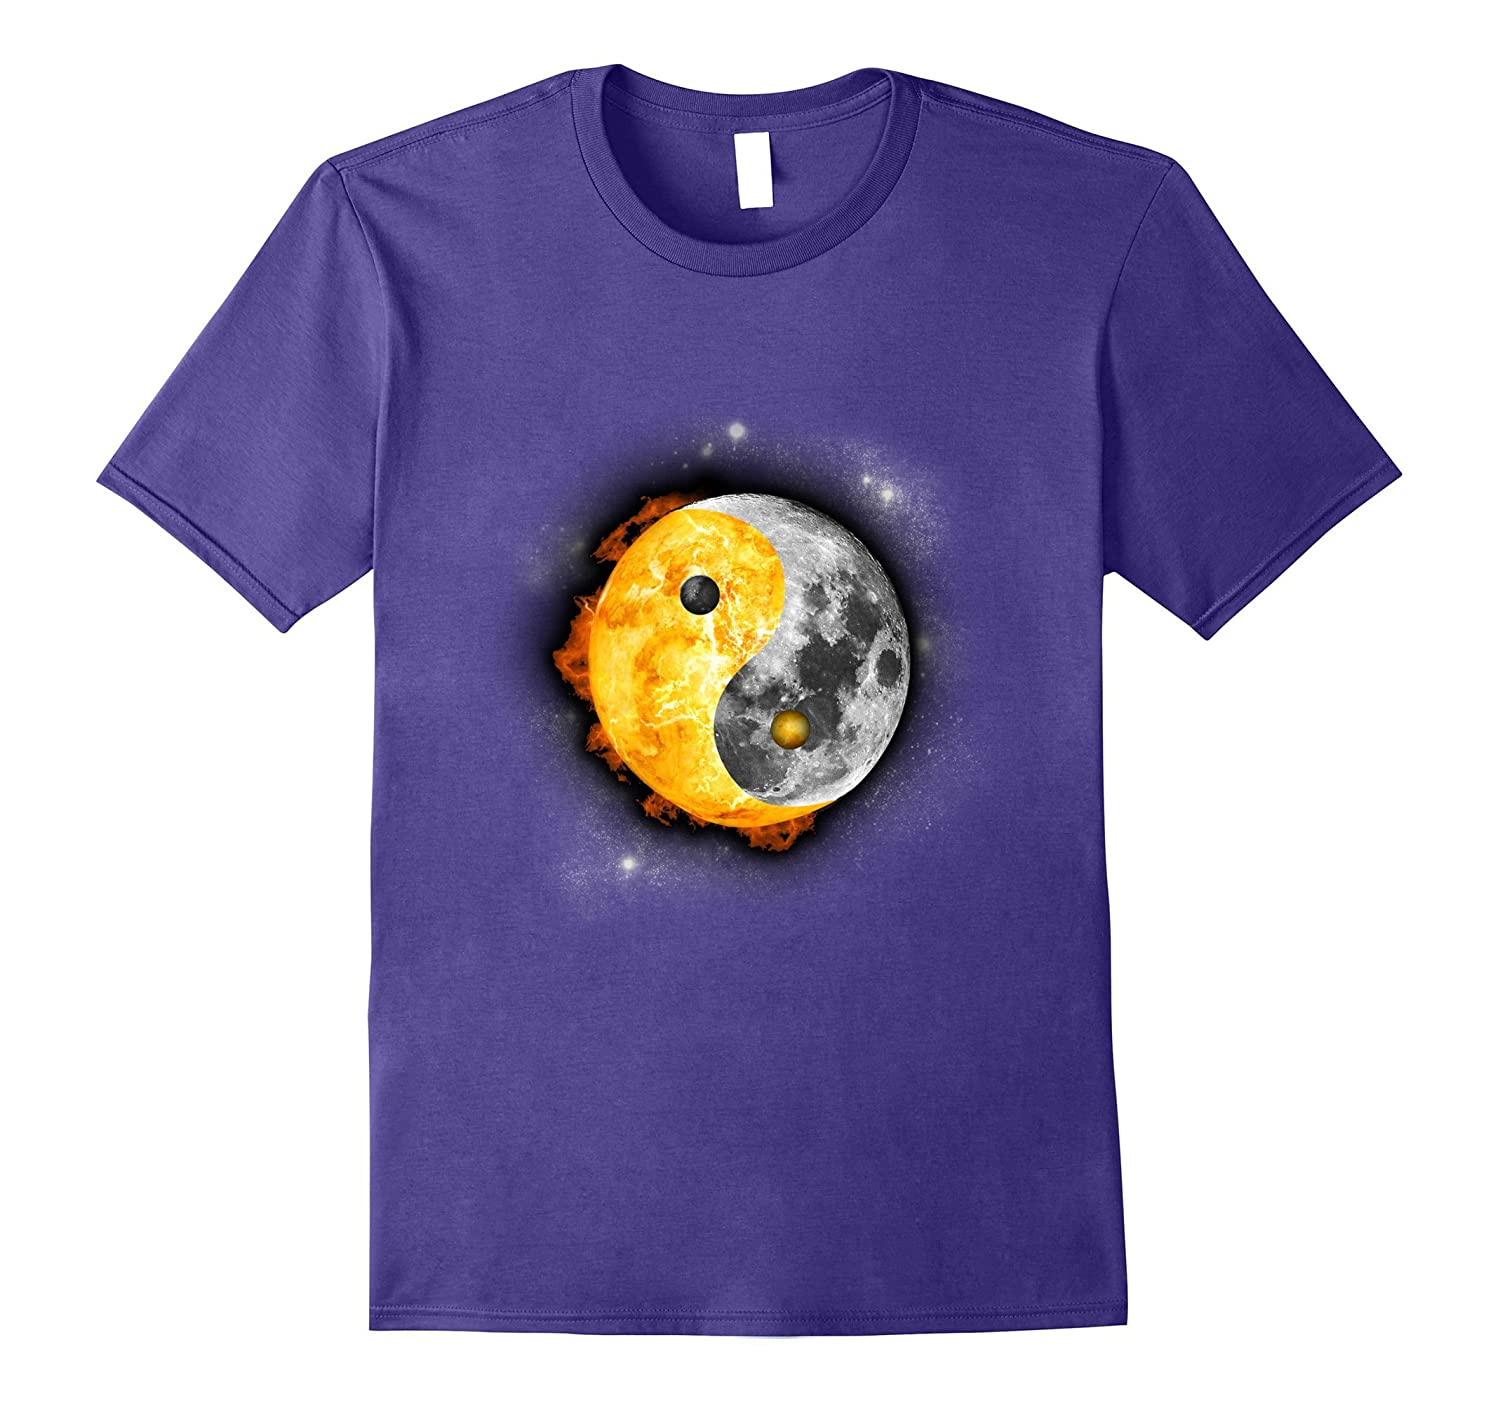 Yin Yang Total Solar Eclipse 2017 August T-Shirt Gift-CL